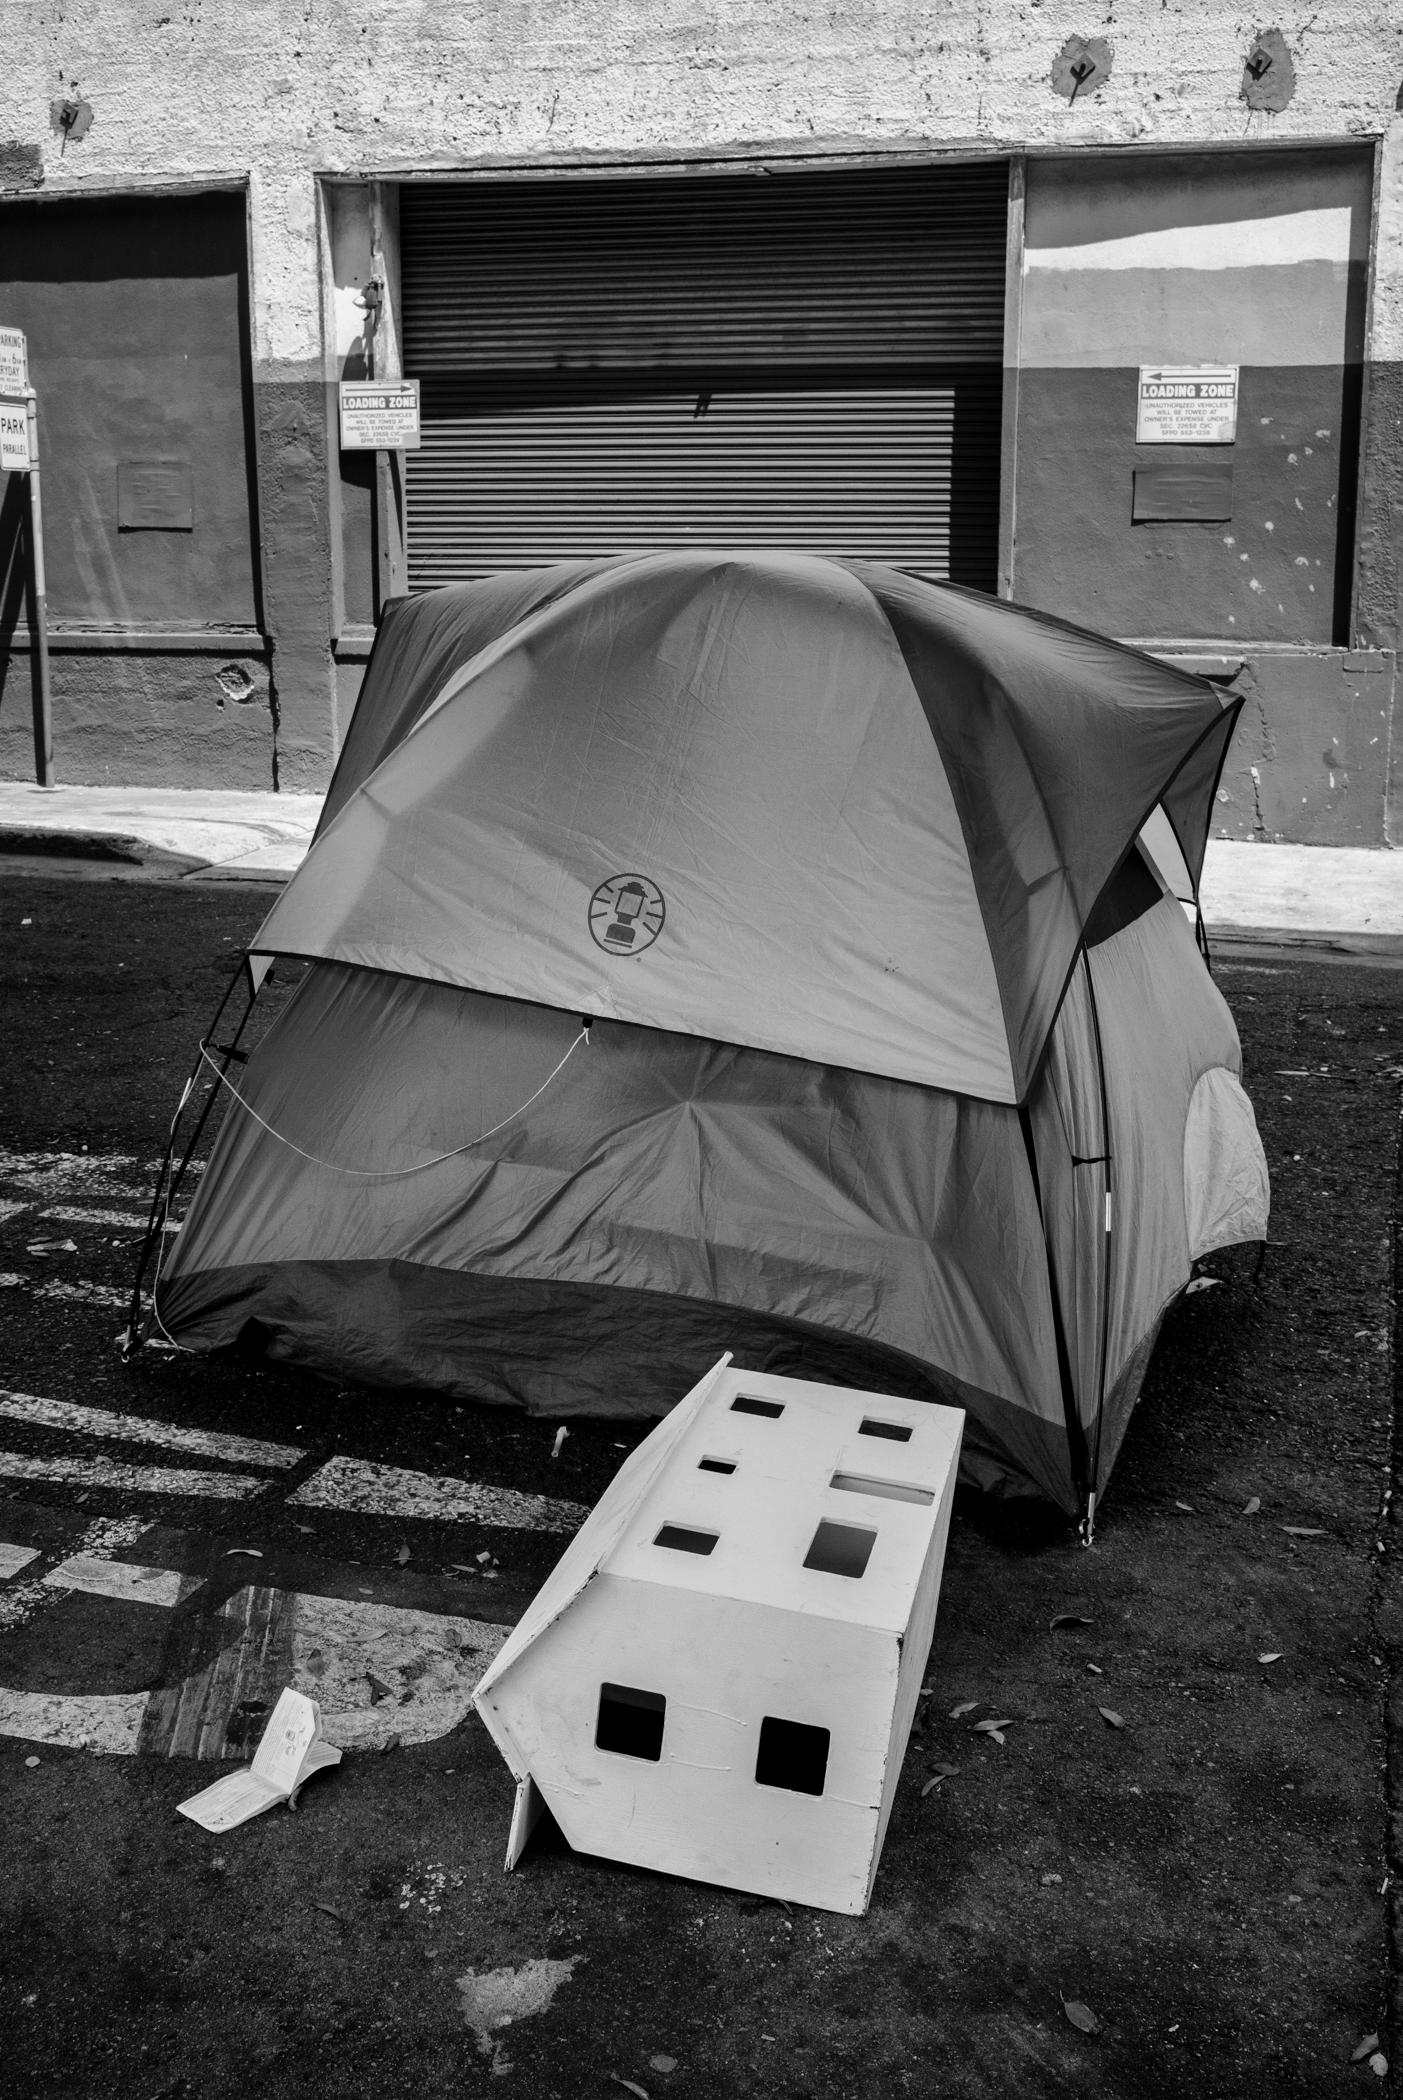 A tent is in the center of the frame. In front of it is what looks like a white dollhouse, laying flat on the ground. The image is in Black and White